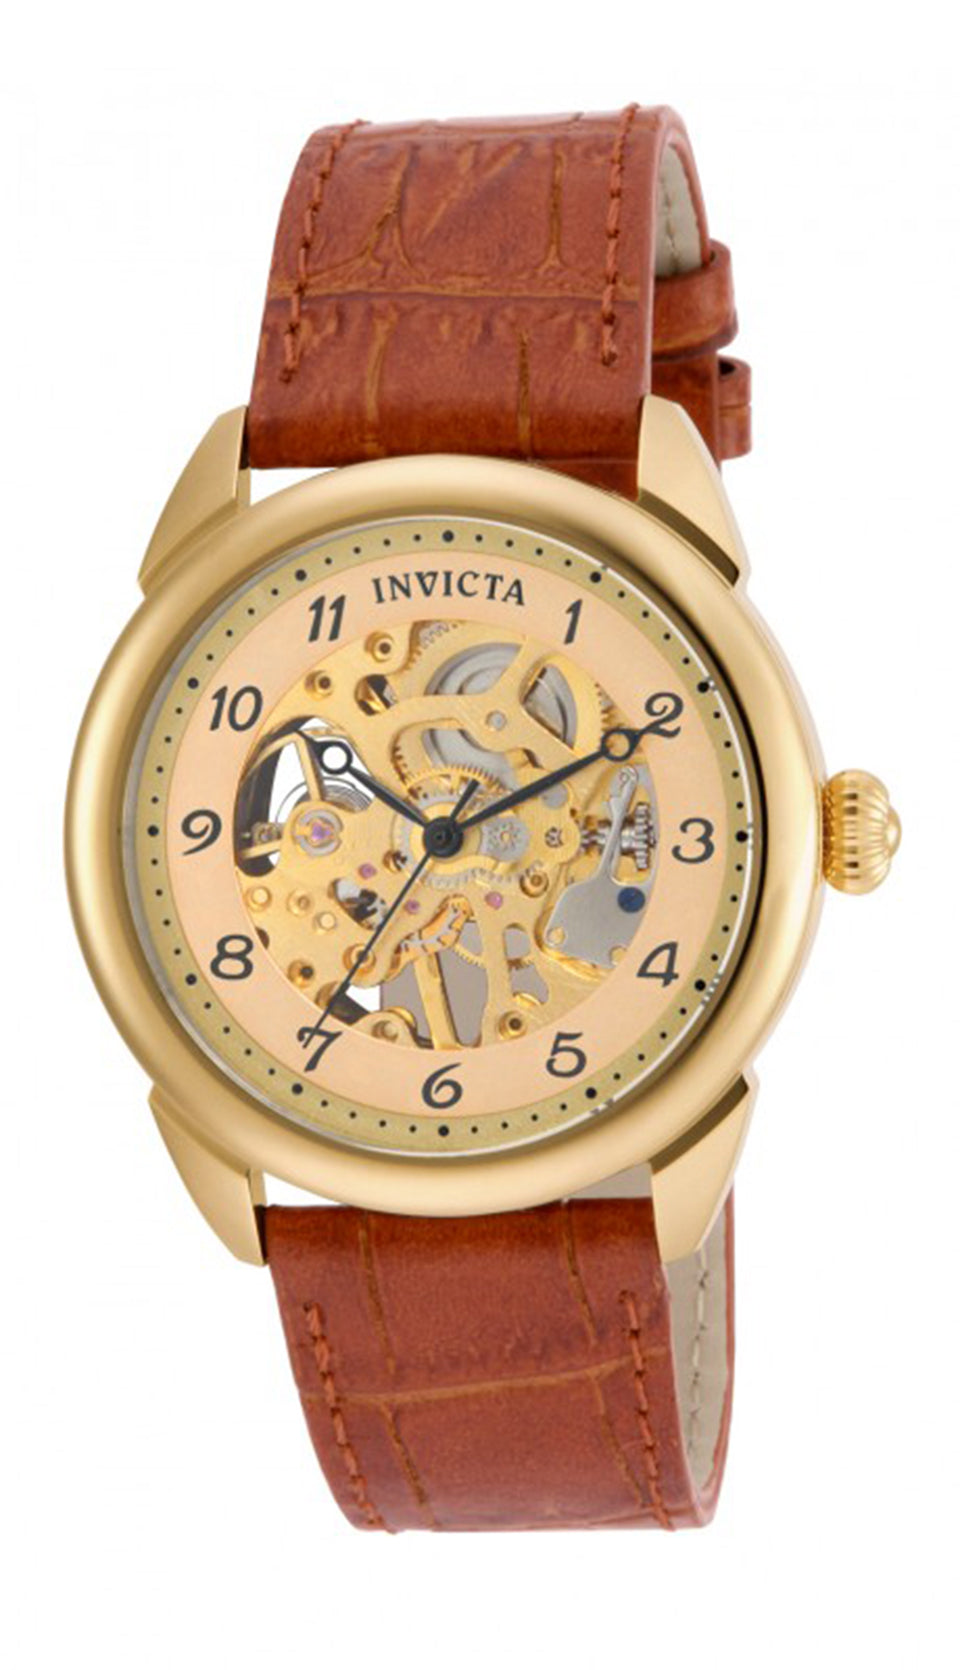 Invicta Men's 17188 Specialty Mechanical 3 Hand Gold Dial Watch